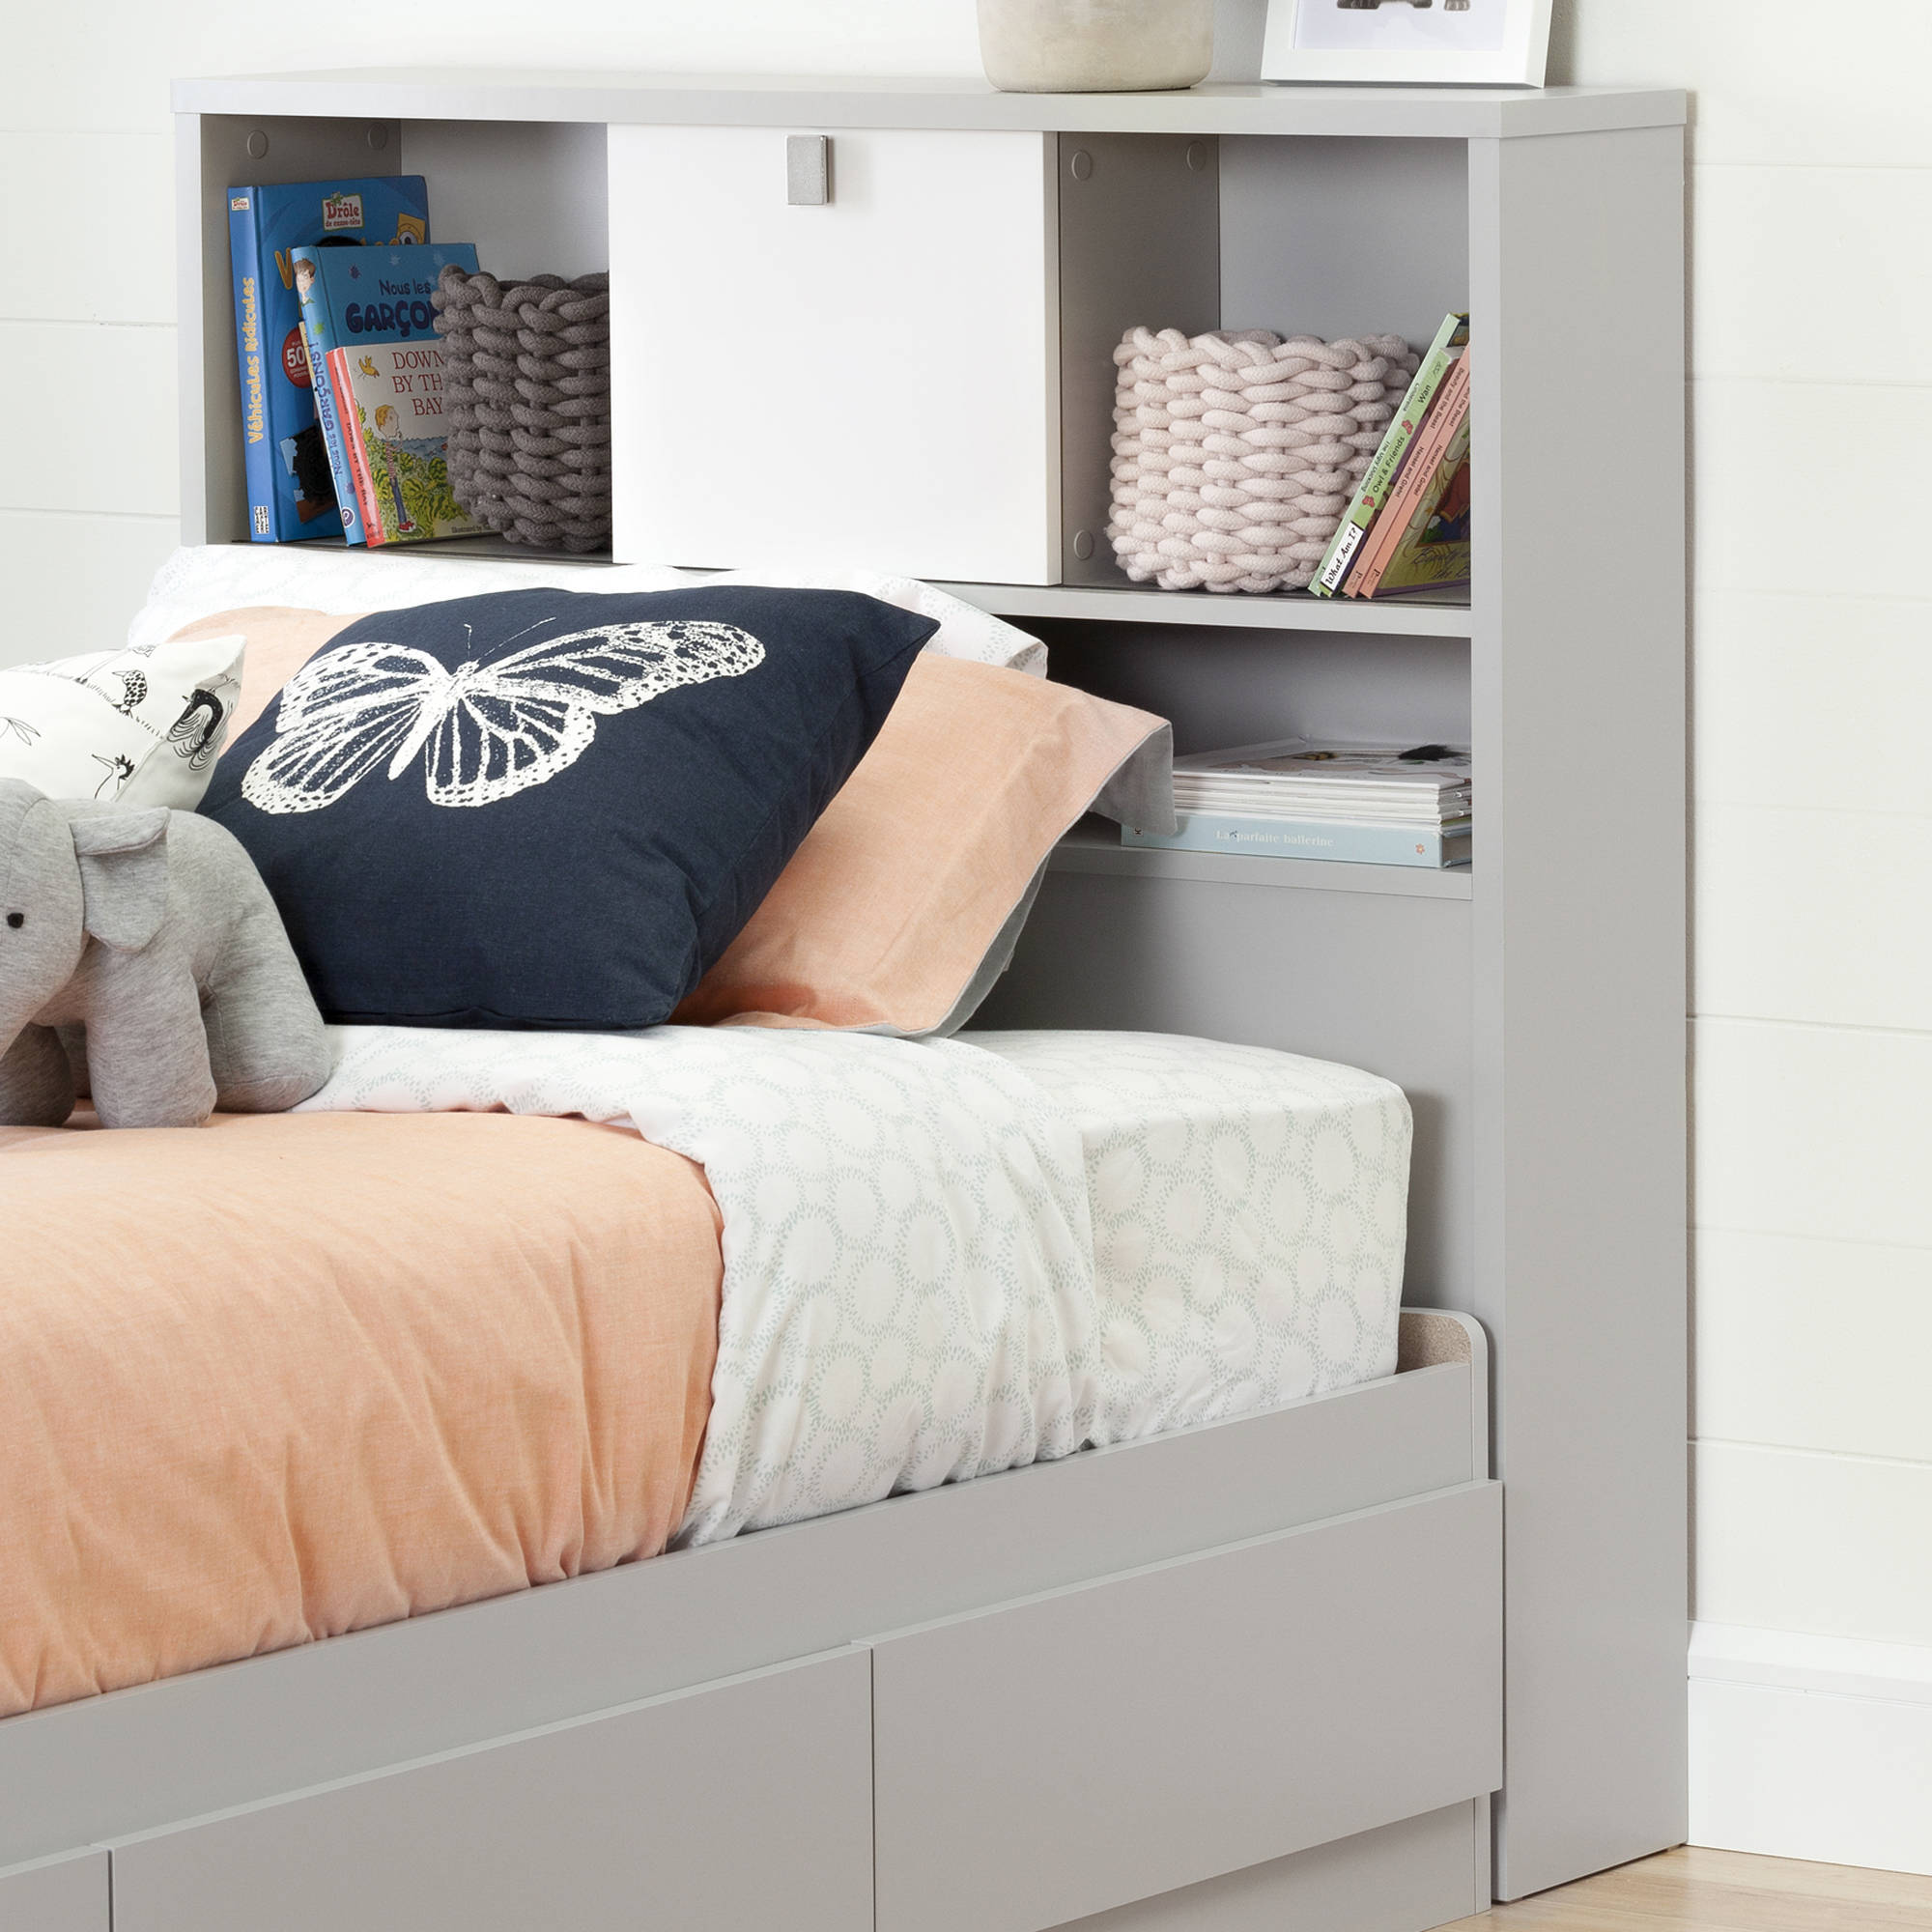 South Shore Cookie Twin Bookcase Headboard, Soft Gray and Pure White by South Shore